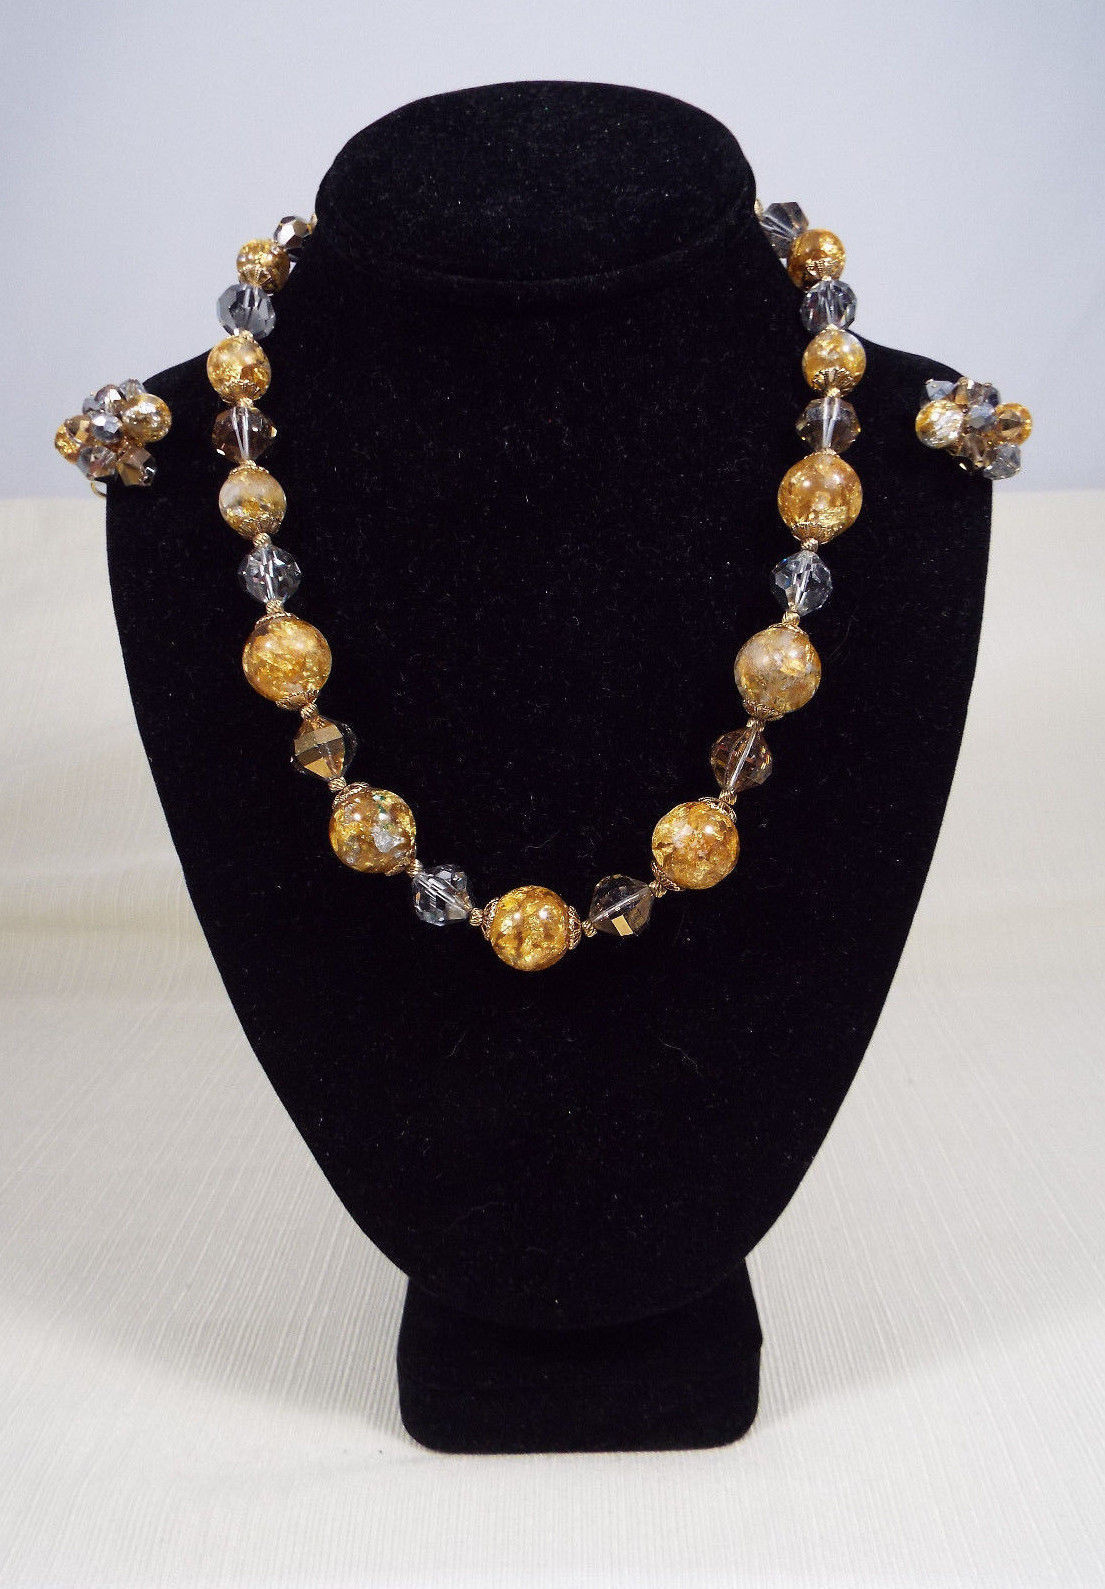 Vintage Couture Signed Vendome Gold Foil Bead Crystal Necklace and Clip Earrings - $299.99